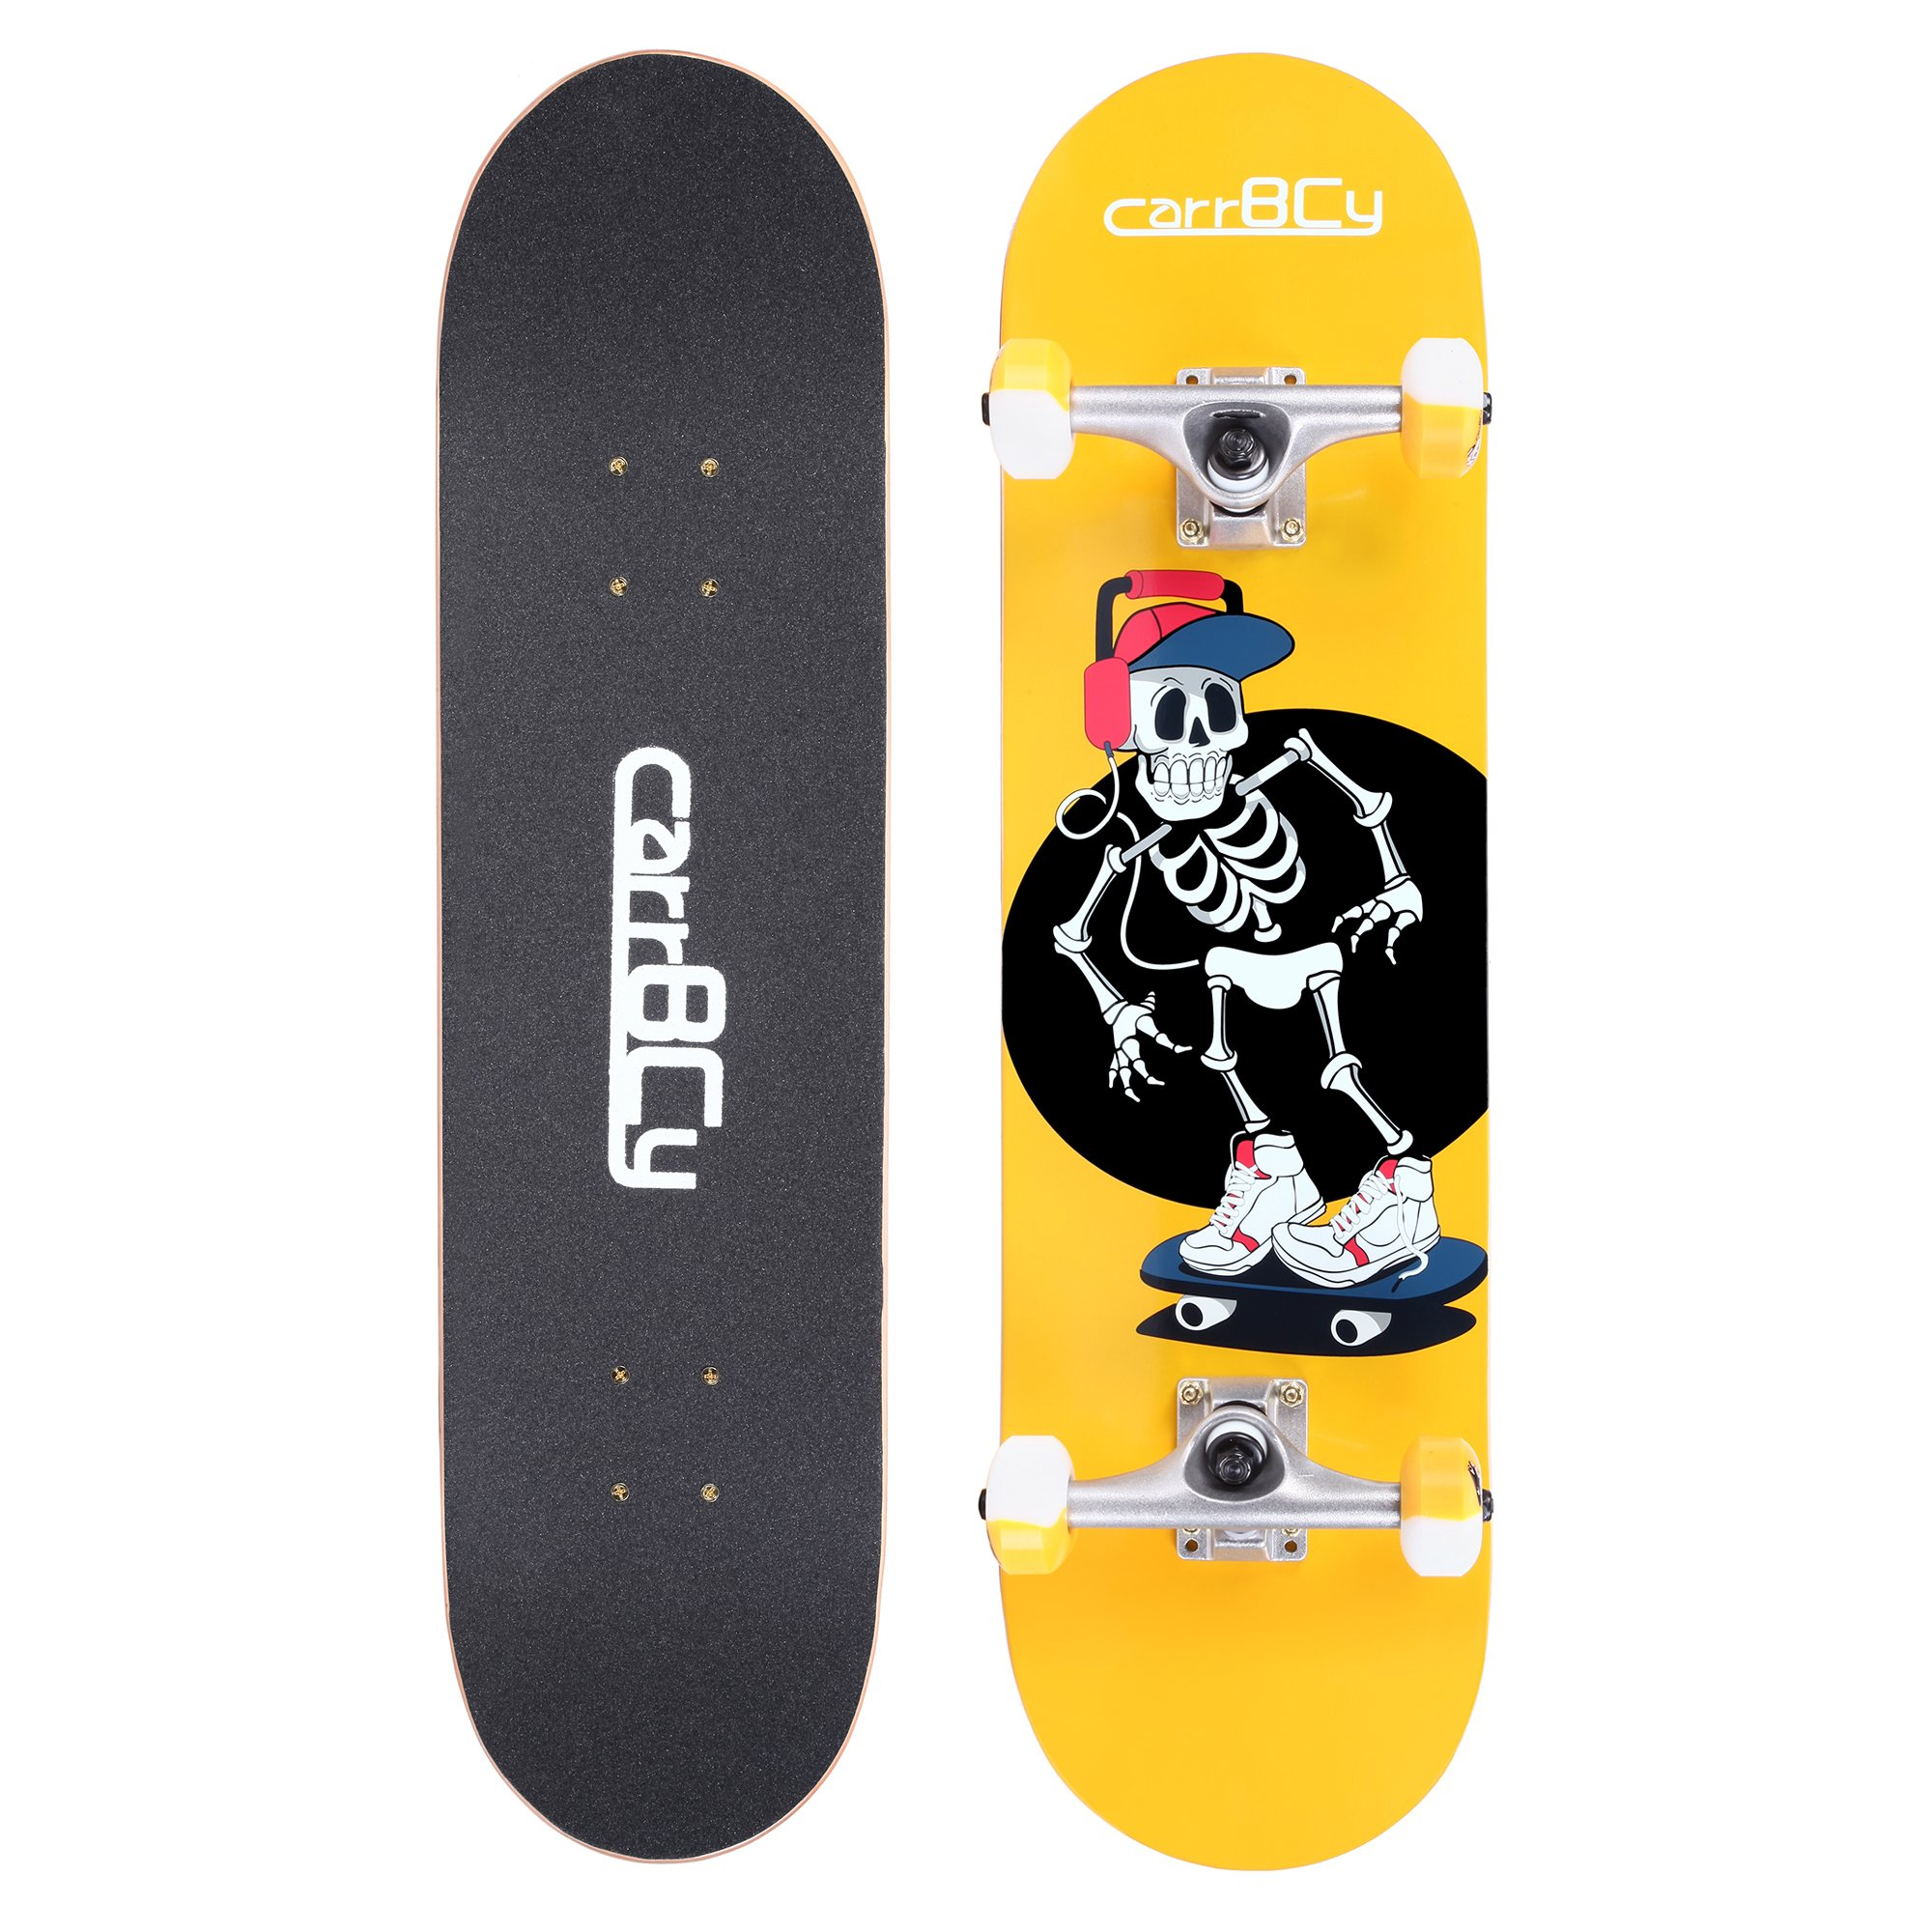 Skateboards, carryBC 31'' Pro Complete Skateboard, 7 Layer Canadian Maple Skateboard Deck for Extreme Sports and Outdoors, Evening Light Powder Skeleton Skating Board, Yellow by carryBC